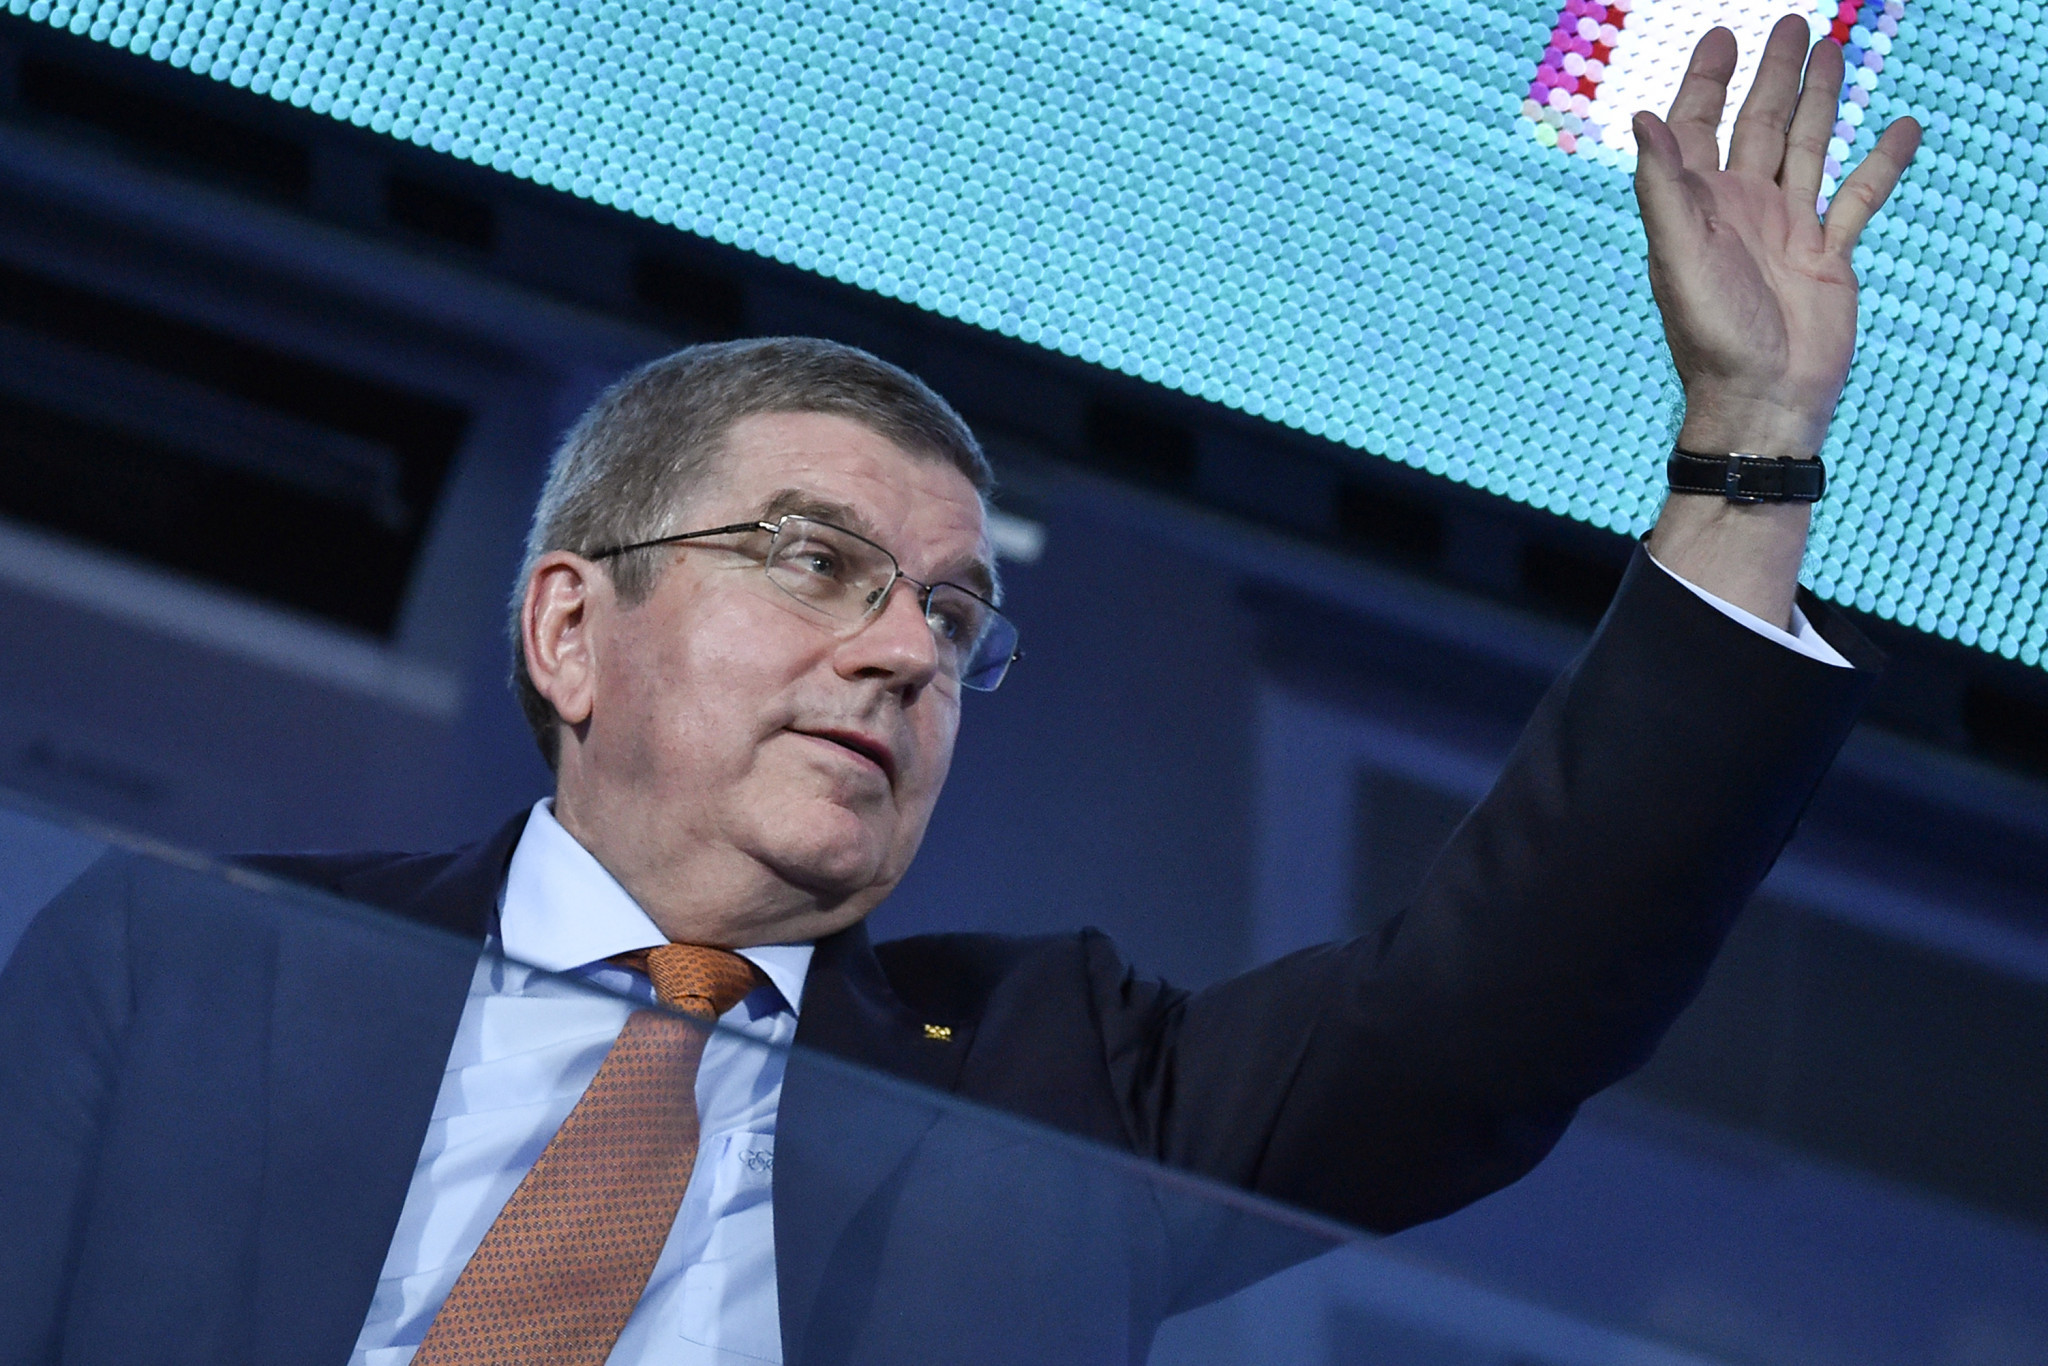 International Olympic Committee President Thomas Bach was in attendance, as was Russian leader Vladimir Putin after both had flown in from the G20 Summit in Osaka for the Closing Ceremony of the European Games ©Getty Images